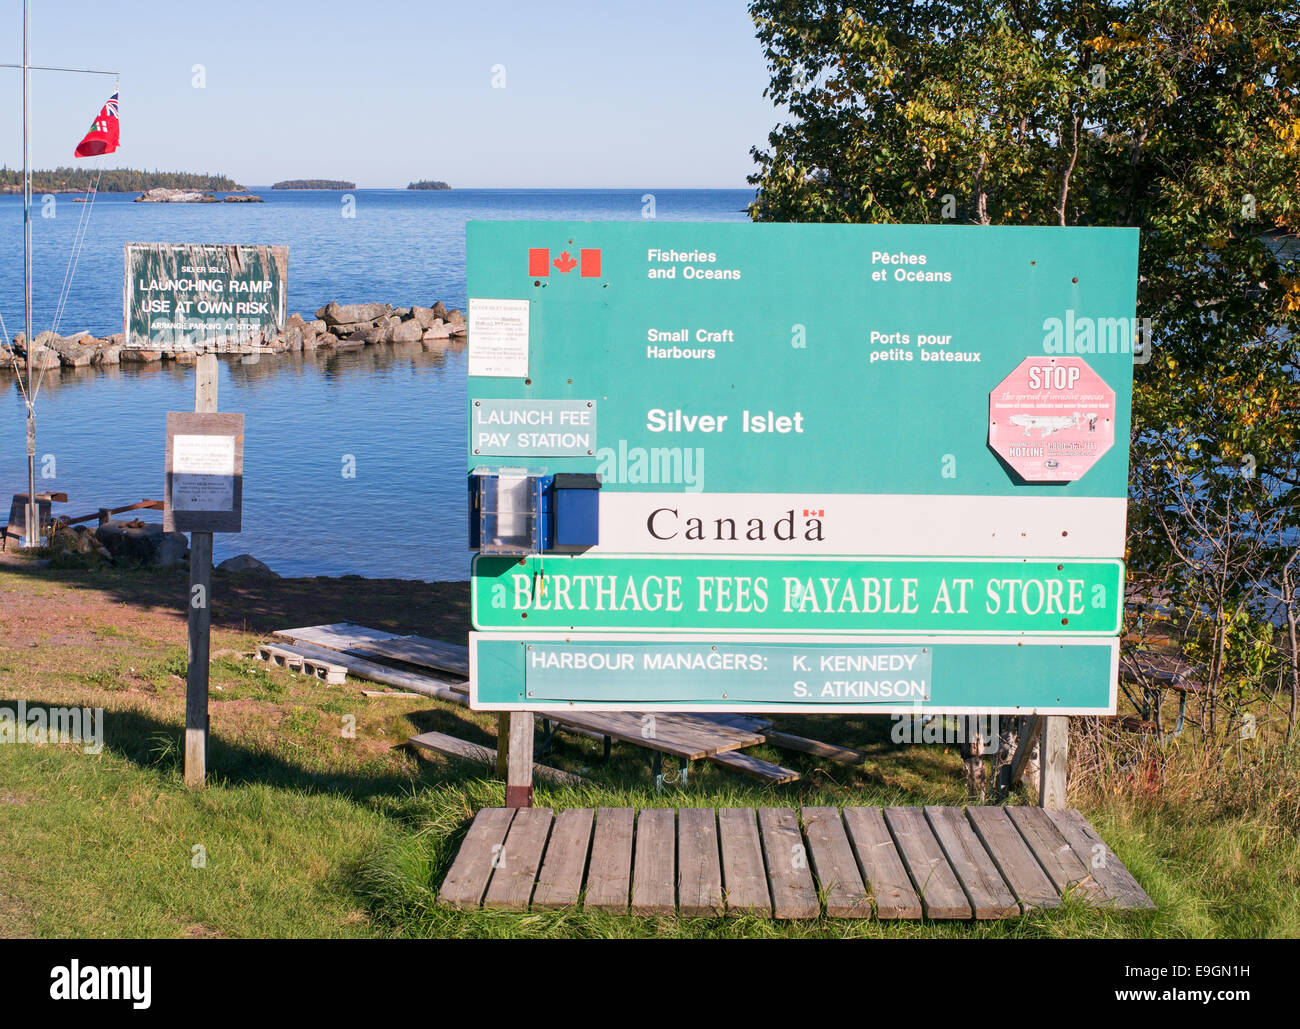 Sign or notice at , Berthage Fees Payable at Store, Ontario, Canada - Stock Image